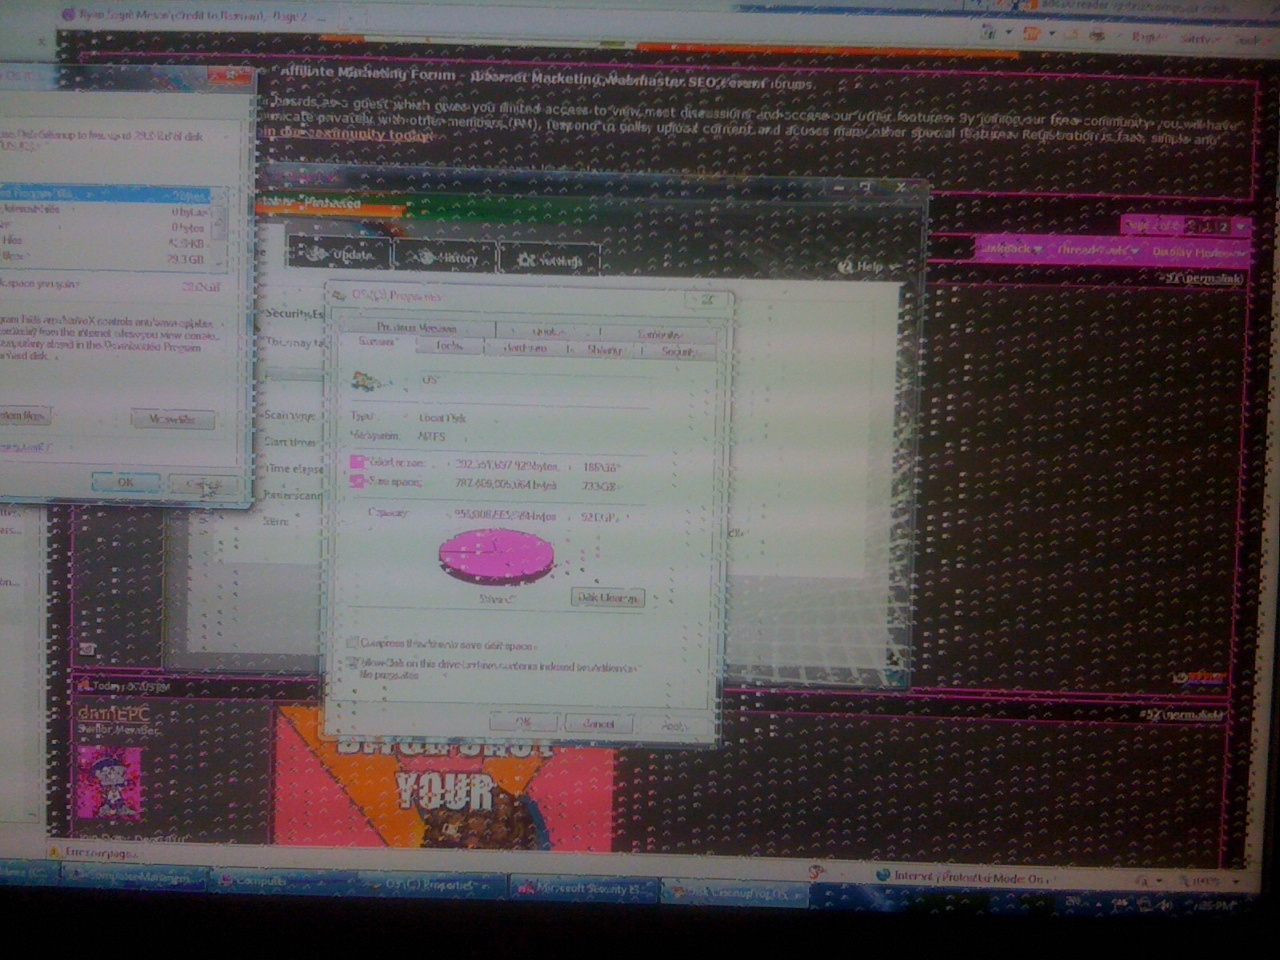 Pixelated Screen and Unexpected Crash - Windows 7 - Picture